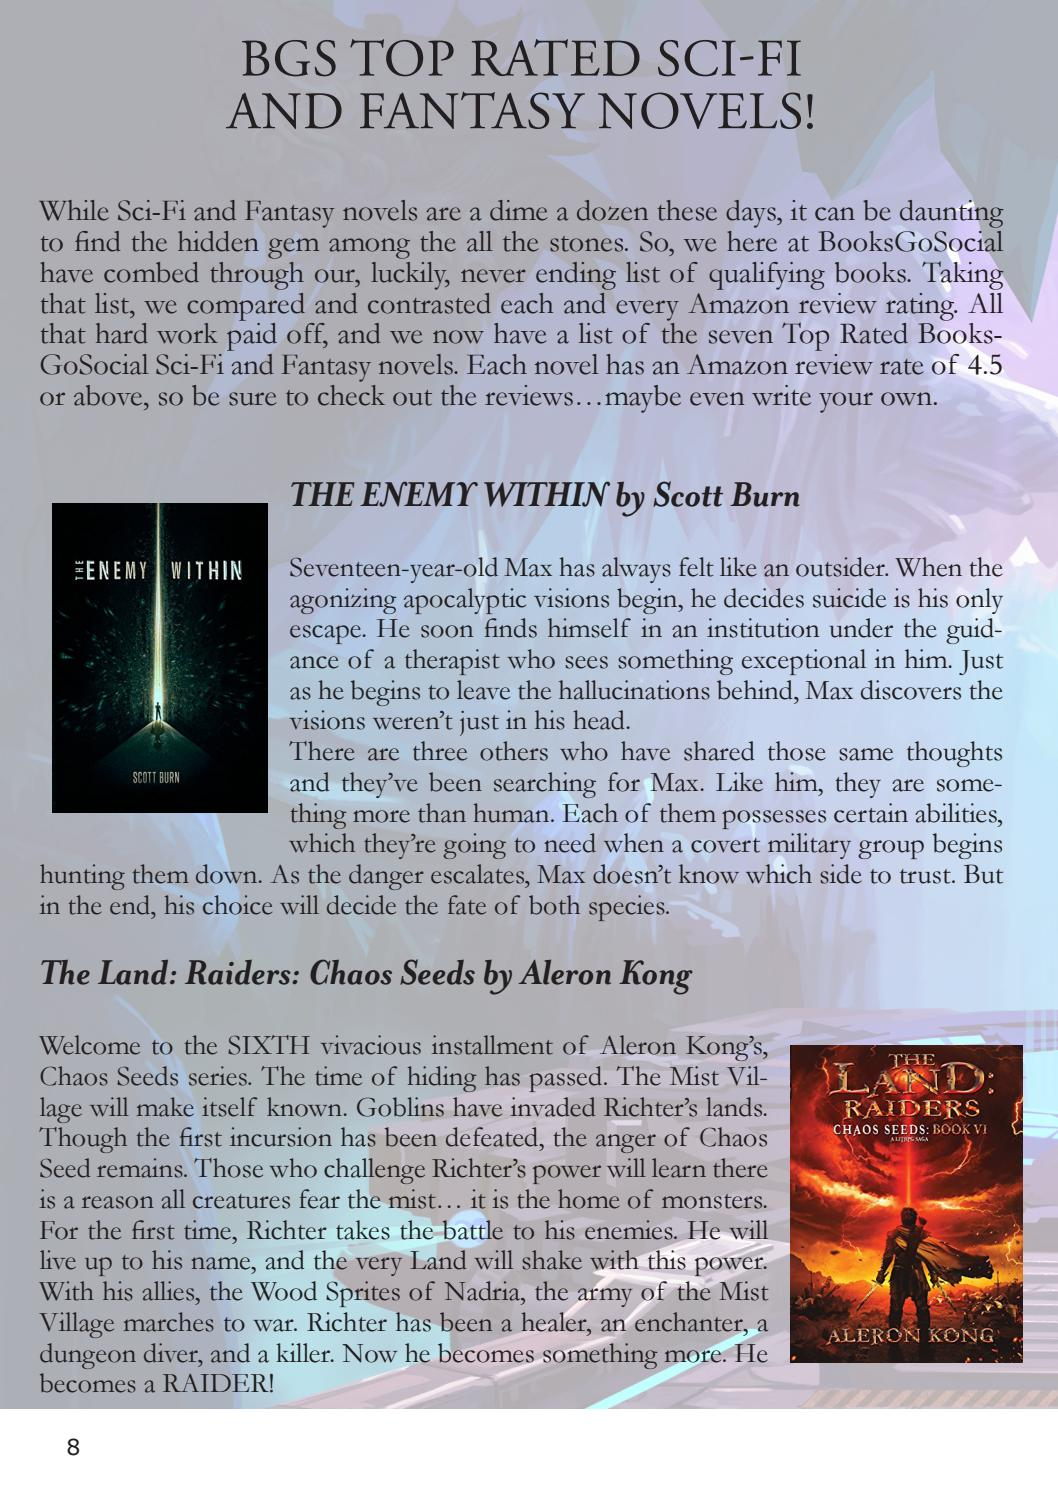 Your Secret Library - SciFi & Fantasy